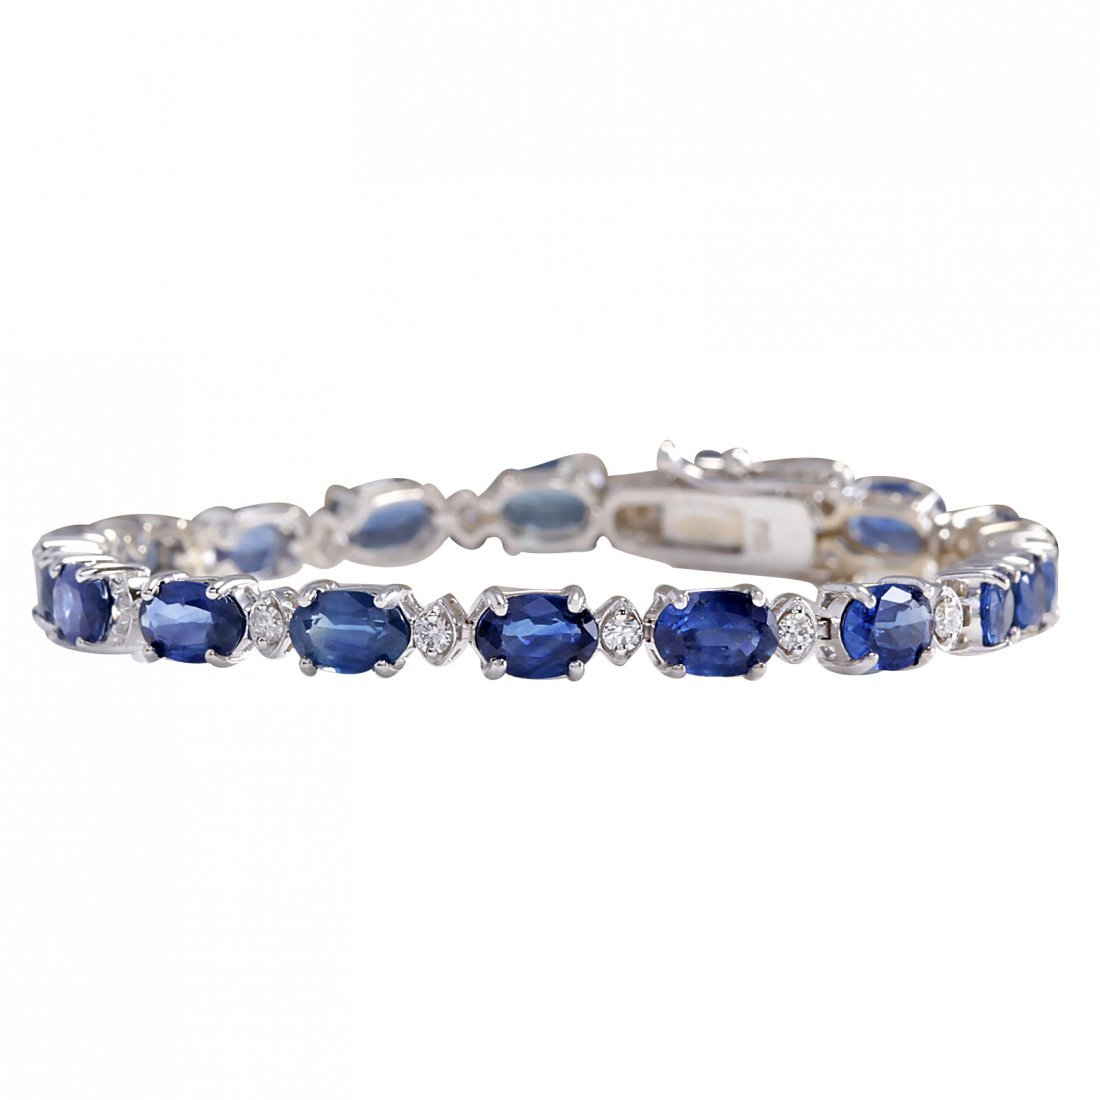 11.95CTW Natural Sapphire And Diamond Bracelet In 14K